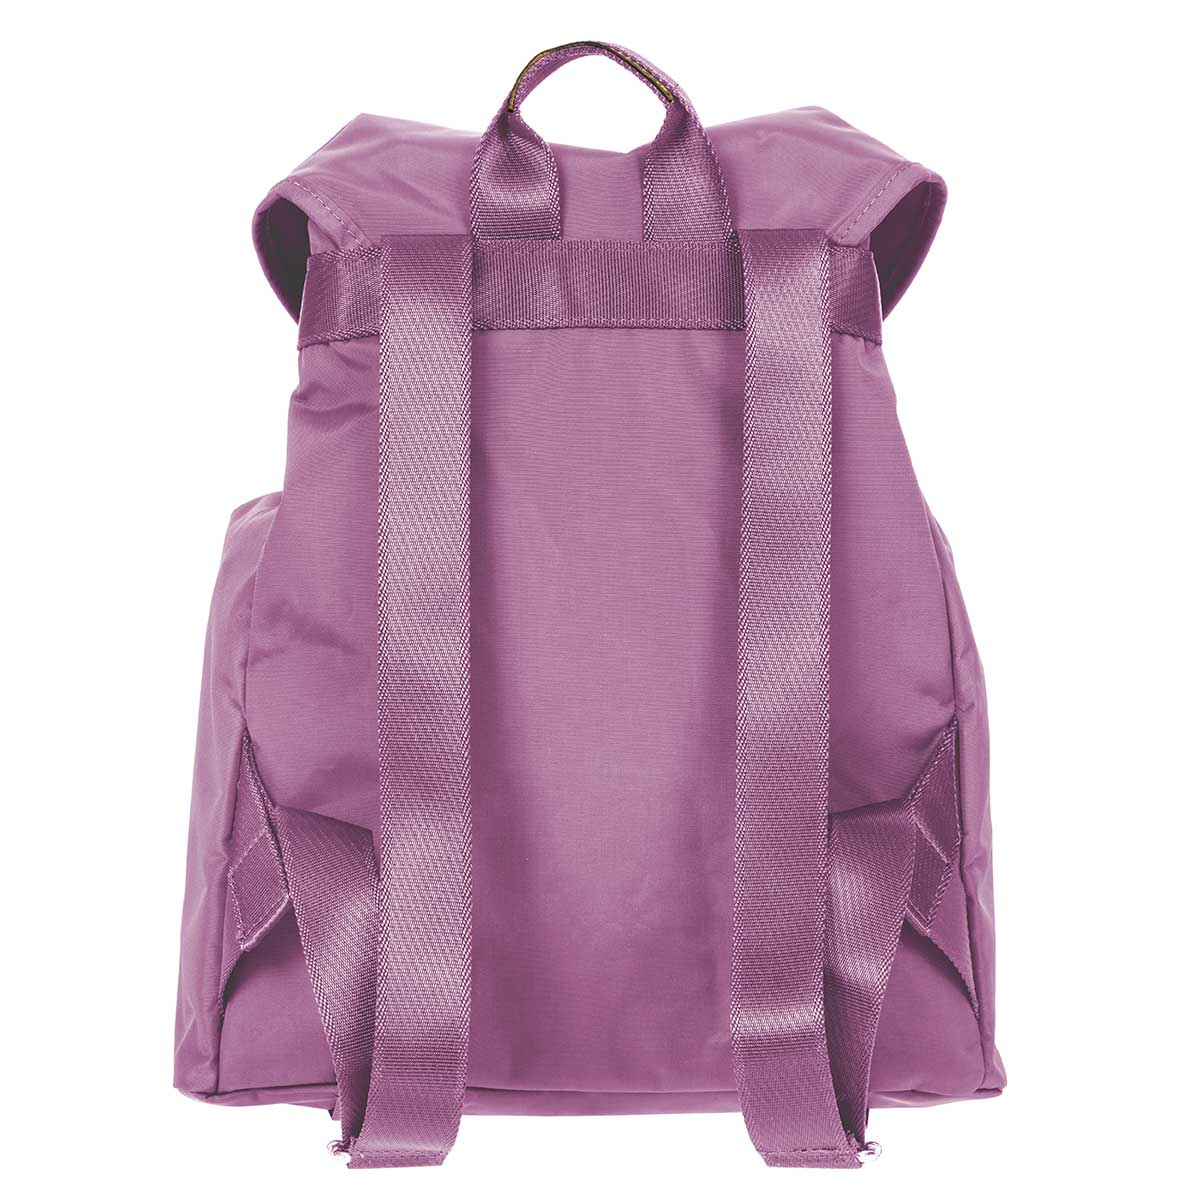 X-Bag Small City Backpack - Wisteria BRIC'S Travel Bags